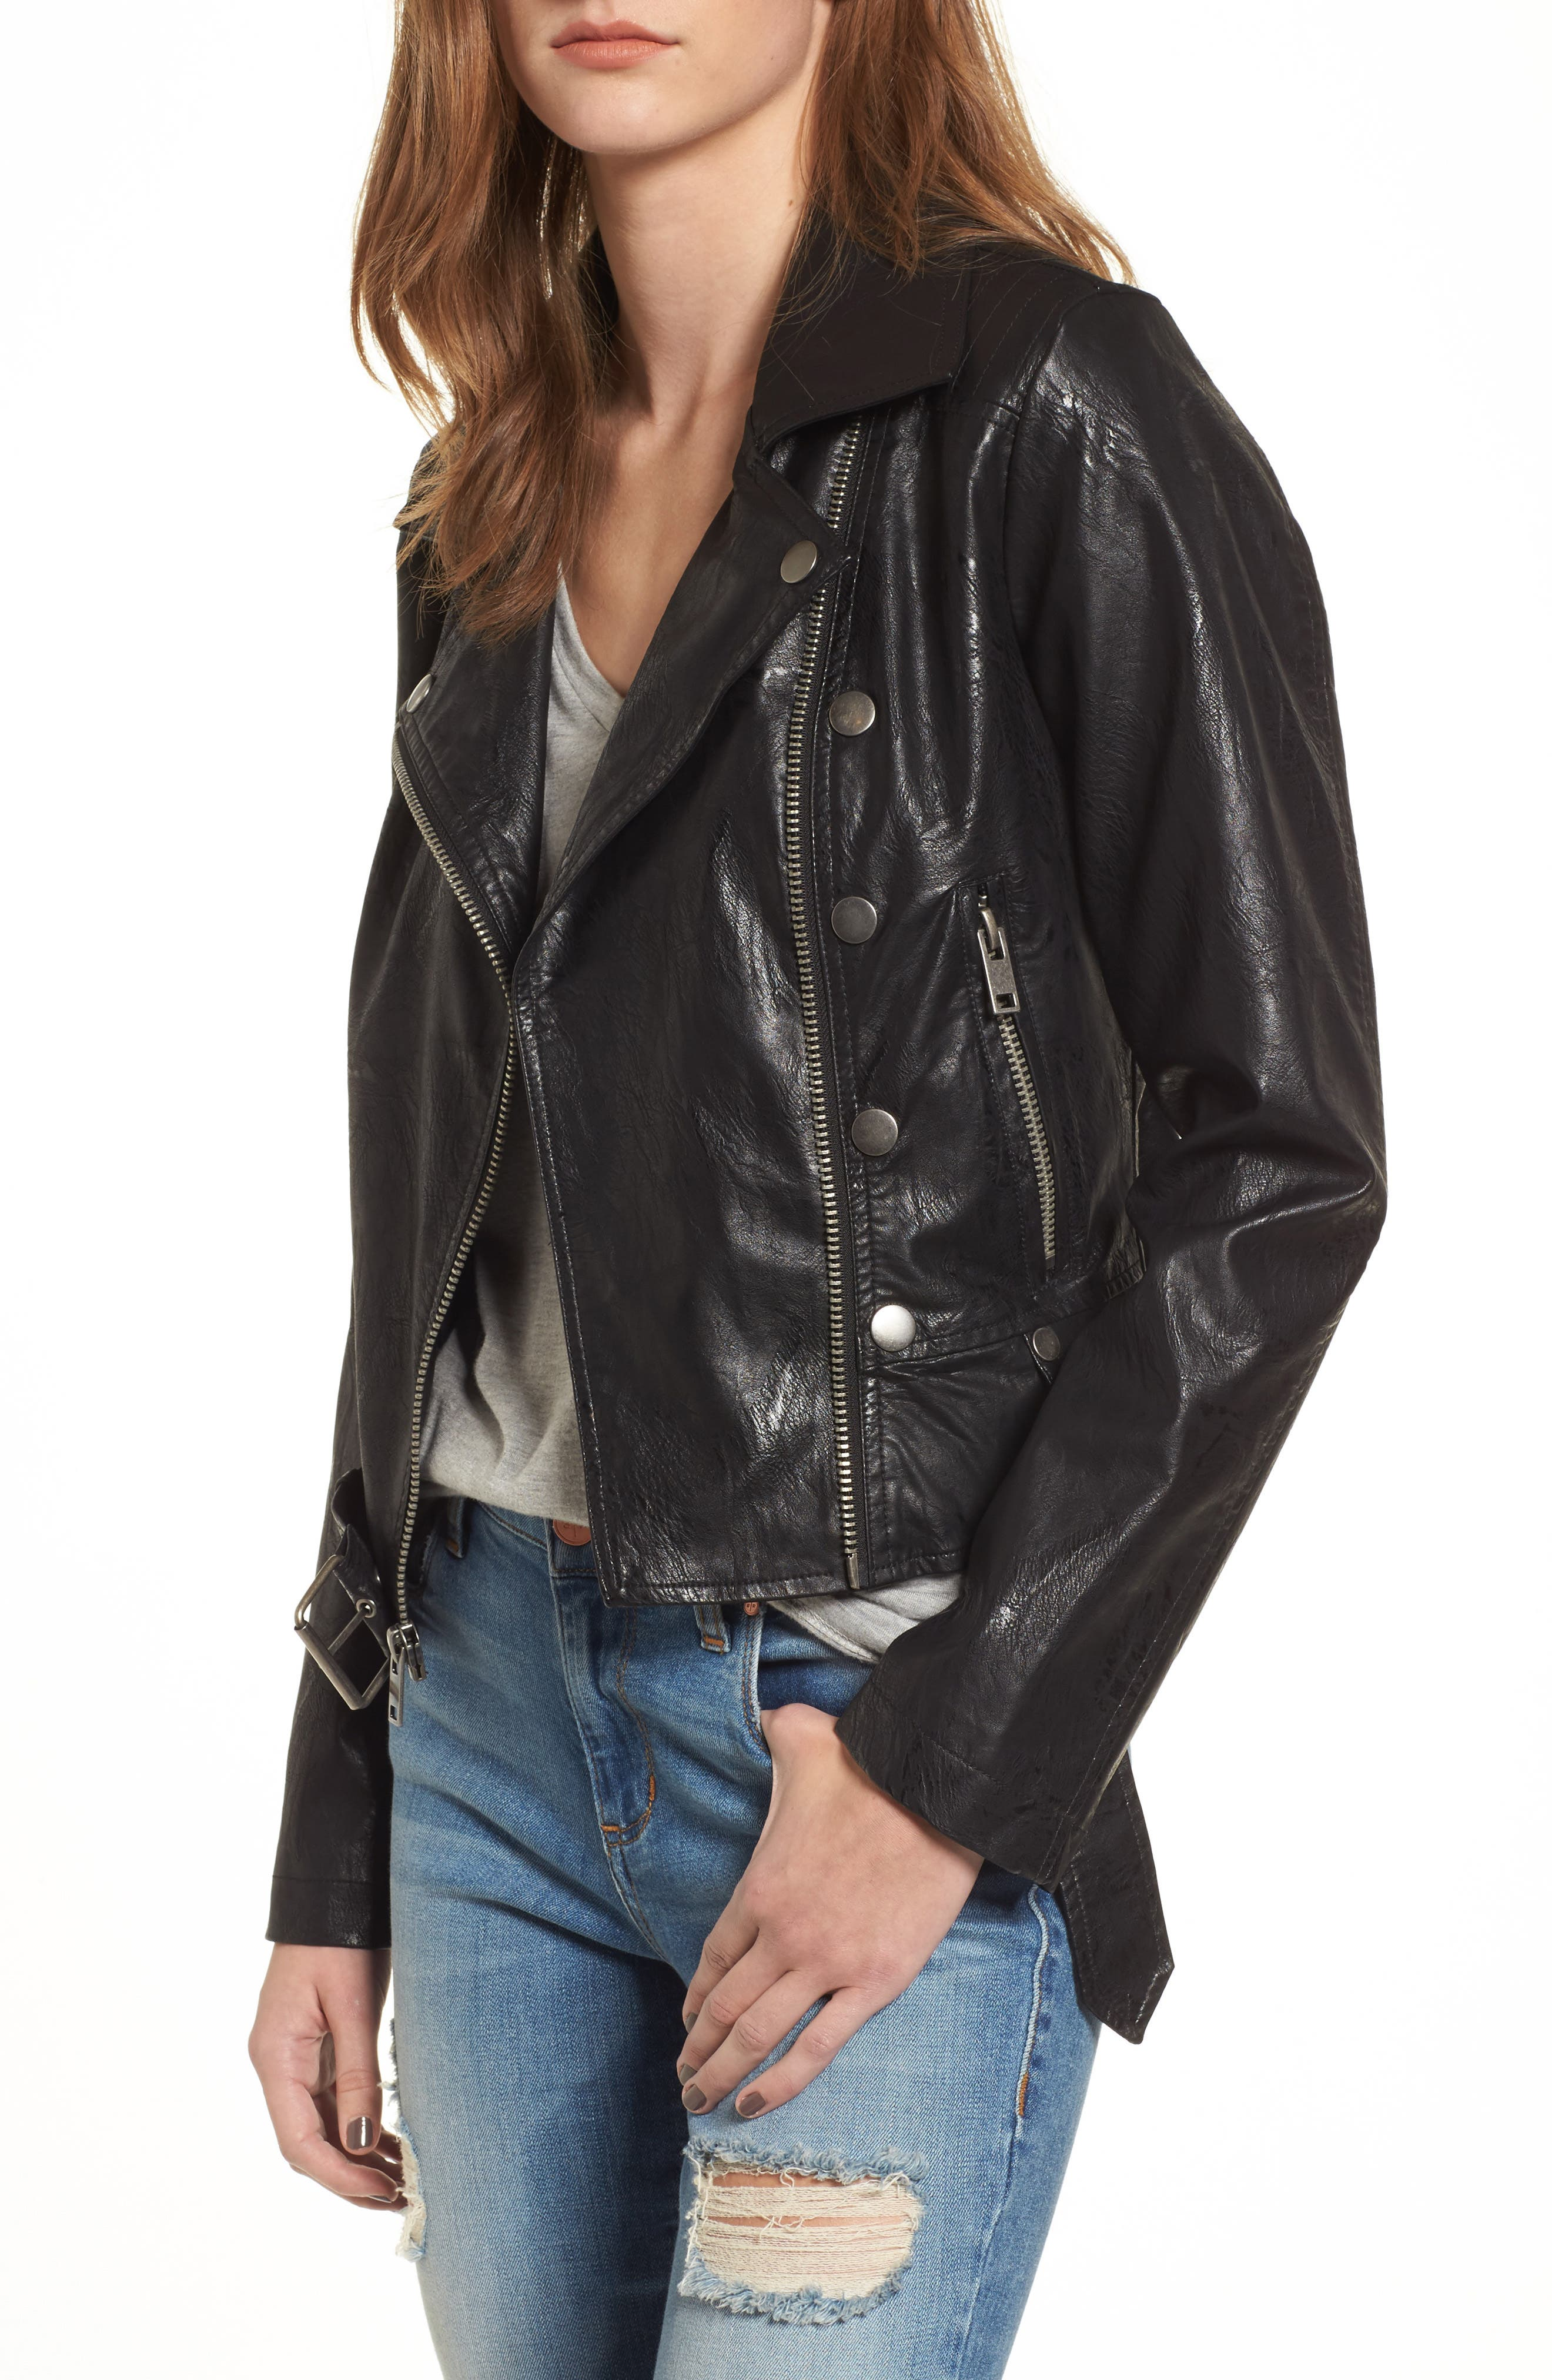 Main Image - Maralyn & Me Textured Faux Leather Jacket